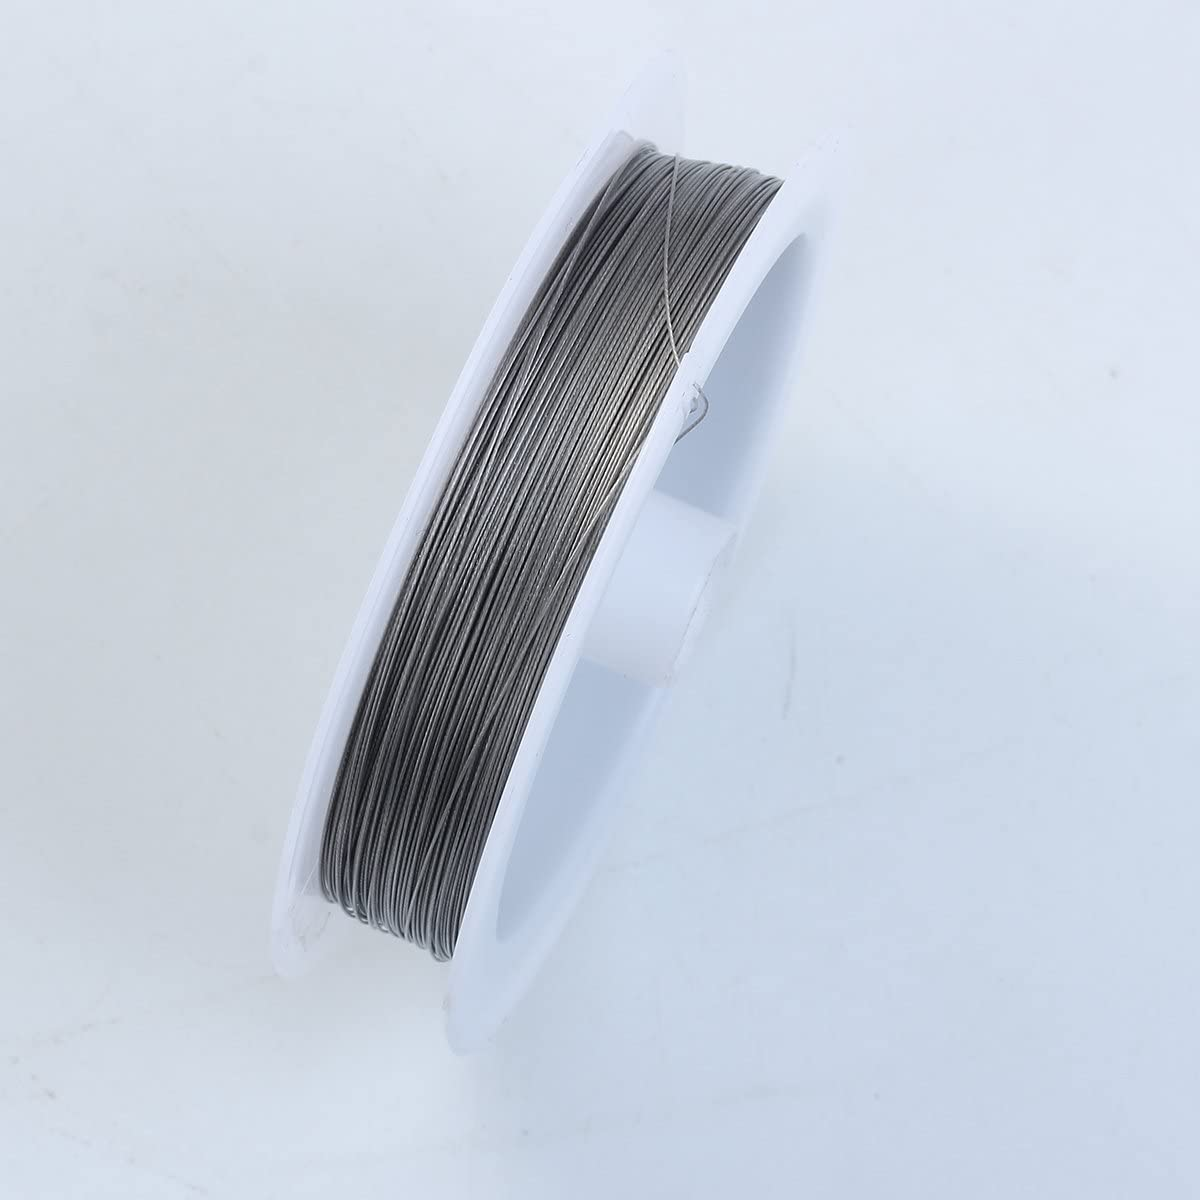 Antique Silver Color Wire 28 Gauge Thickness 0.3MM WAS-101-28G